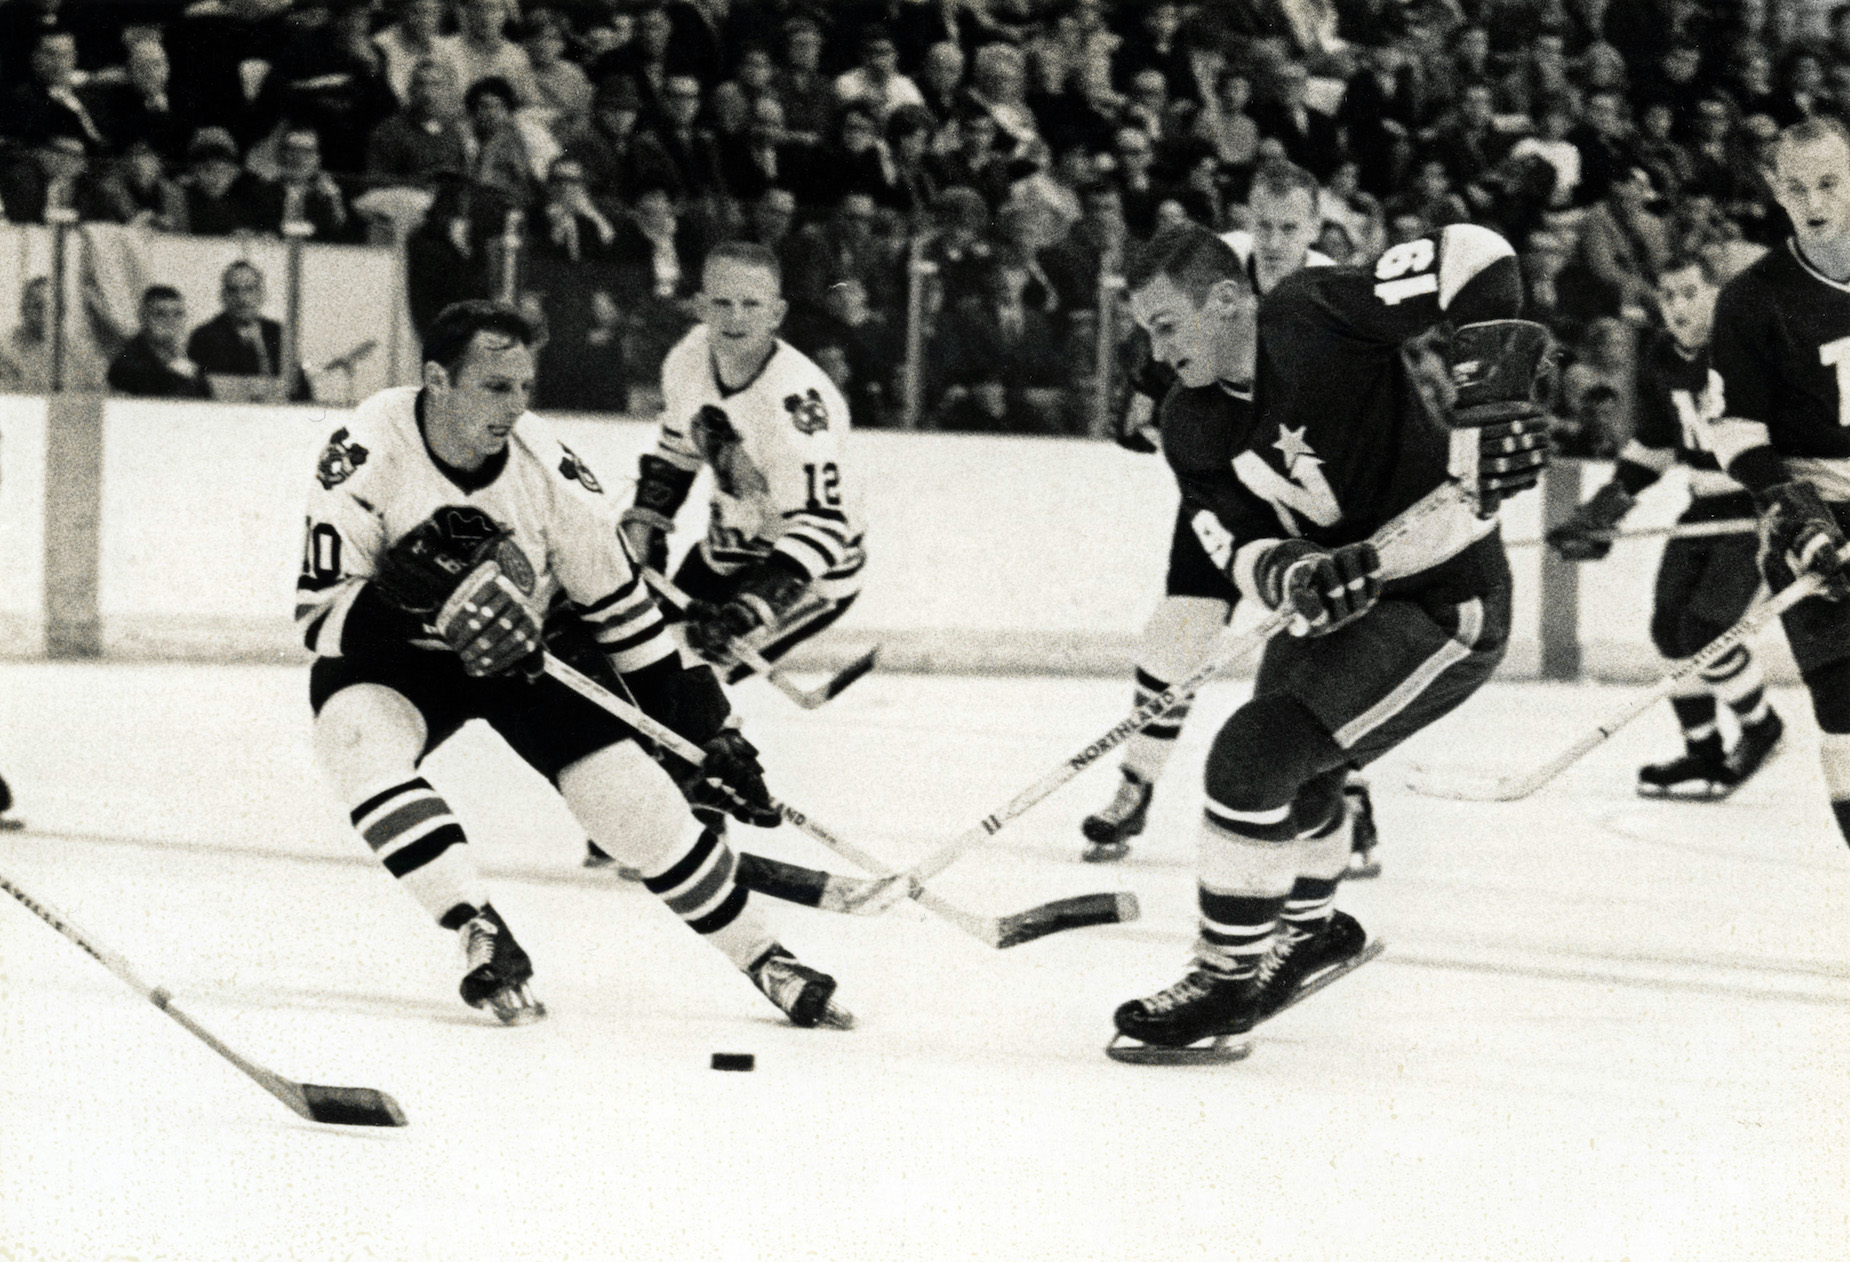 Bill Masterton tragically died after an innocent, on-ice hit.